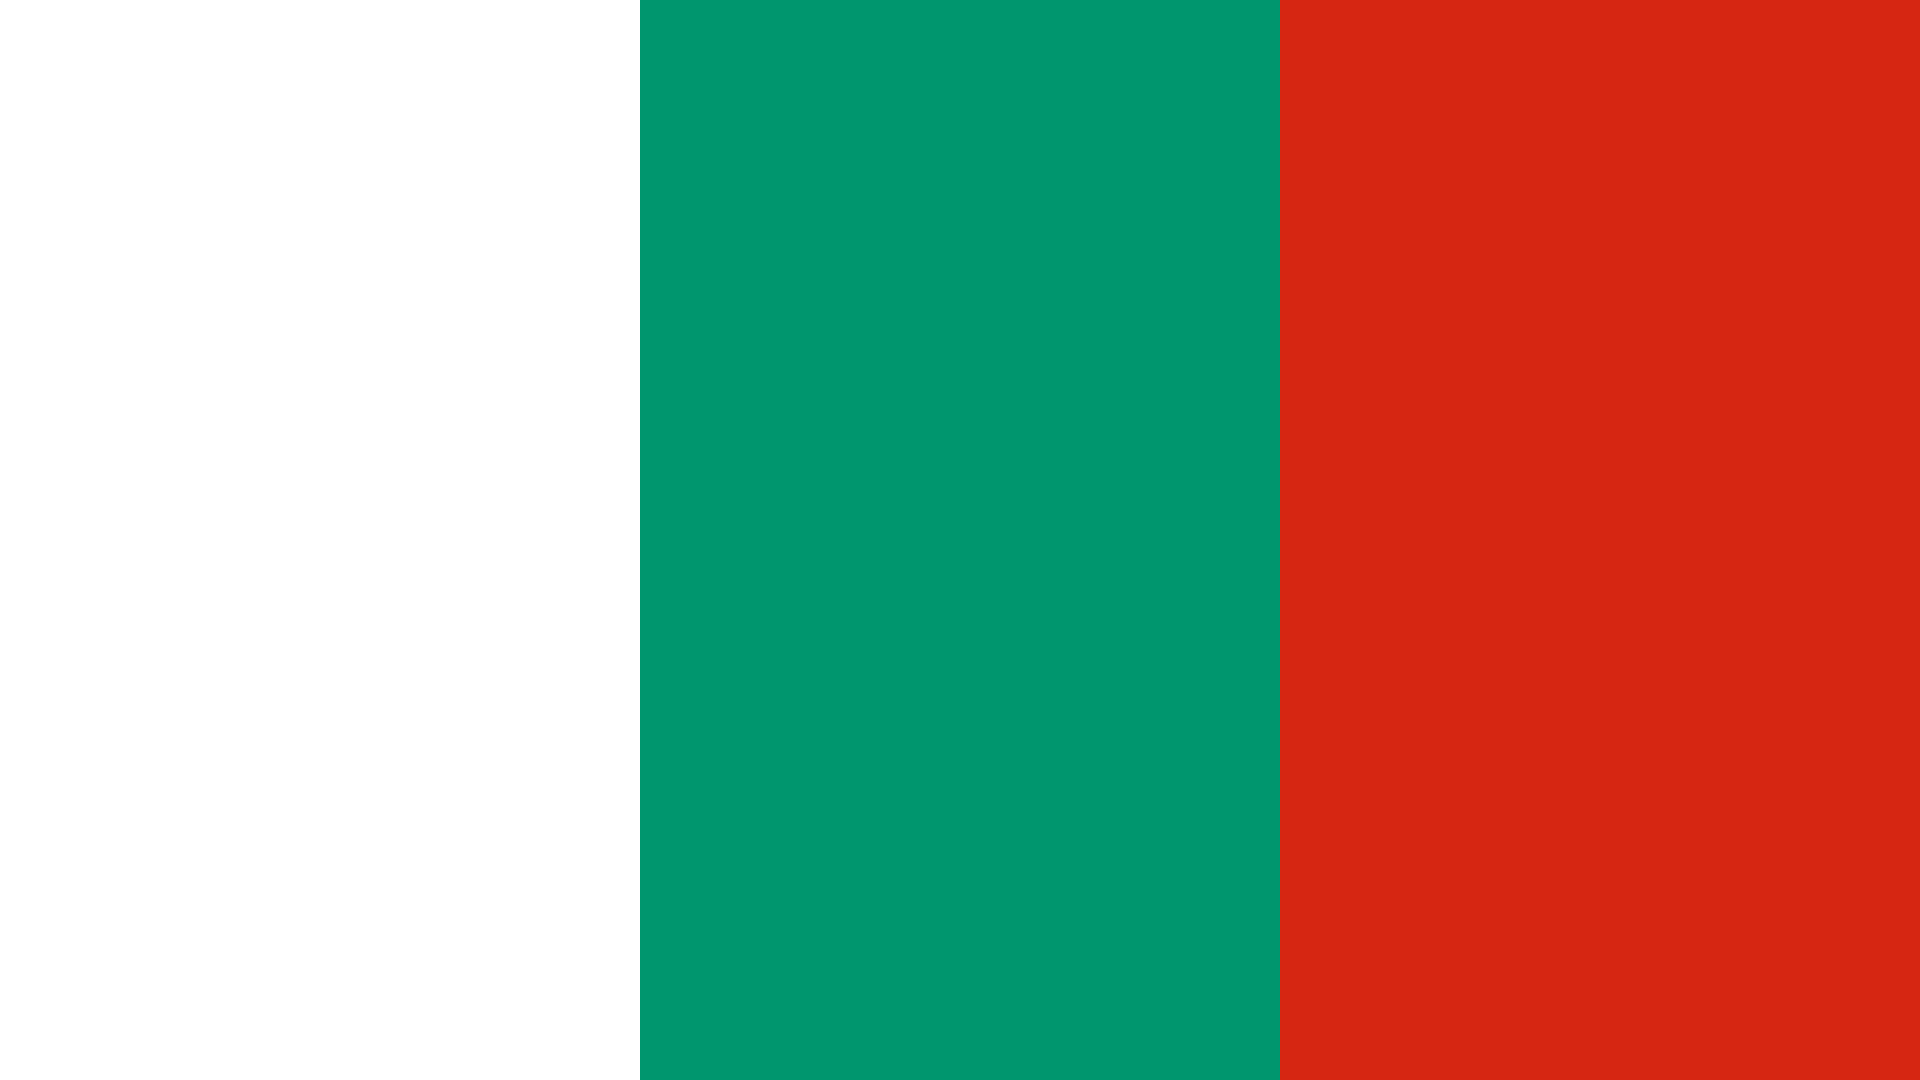 Bulgaria Flag Color Palette